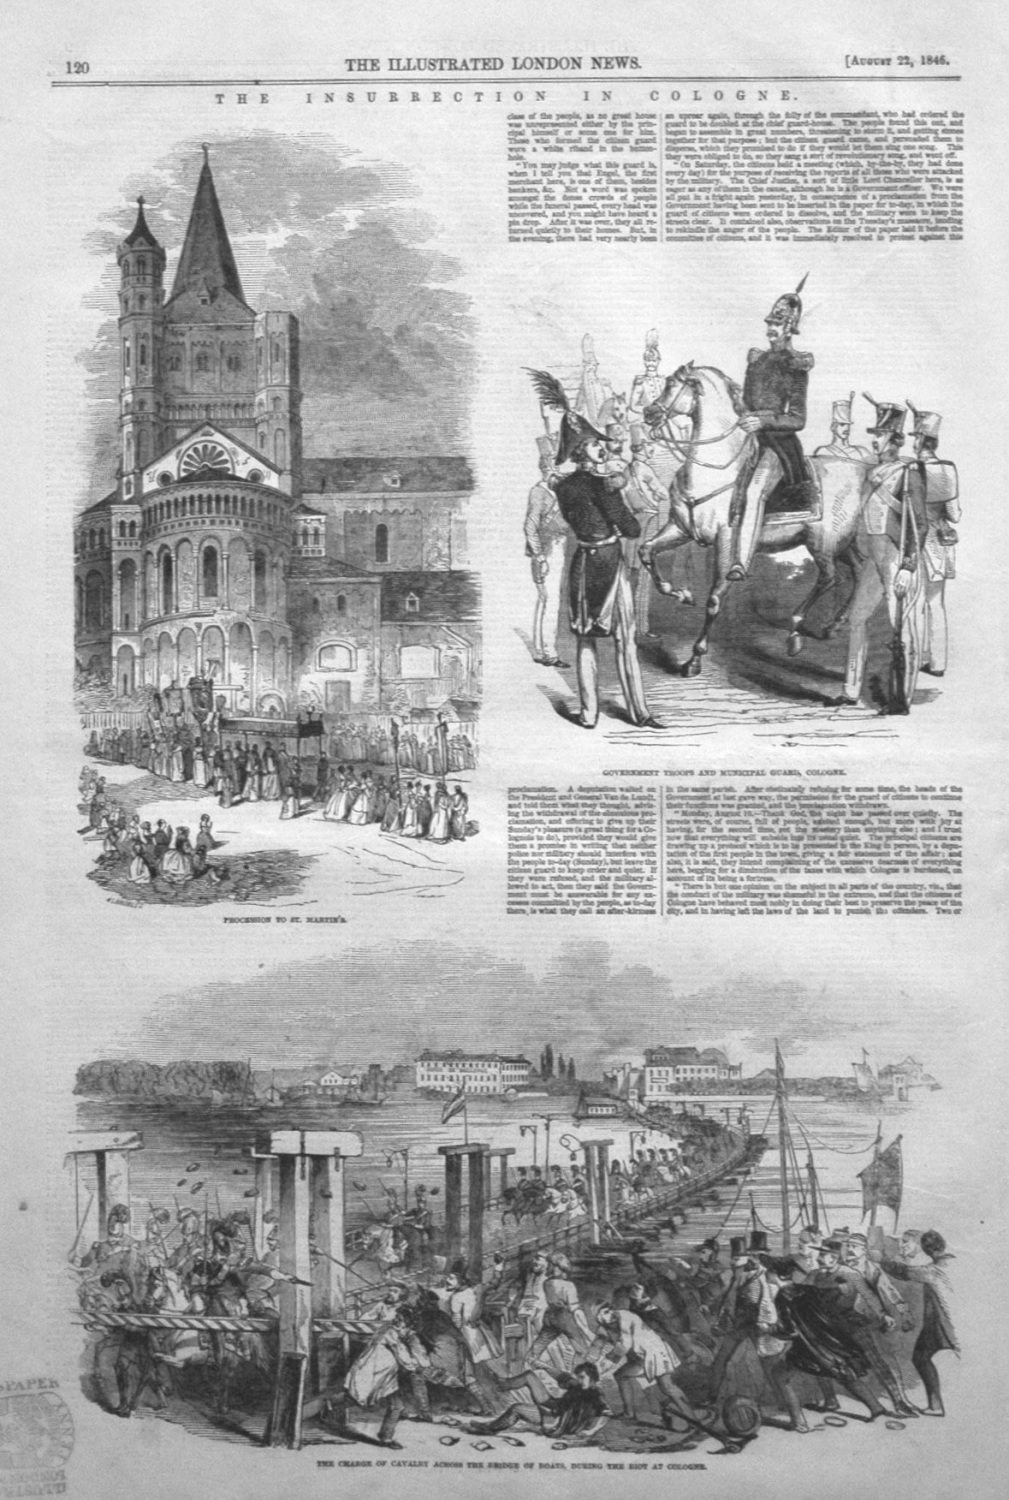 Insurrection in Cologne. 1846